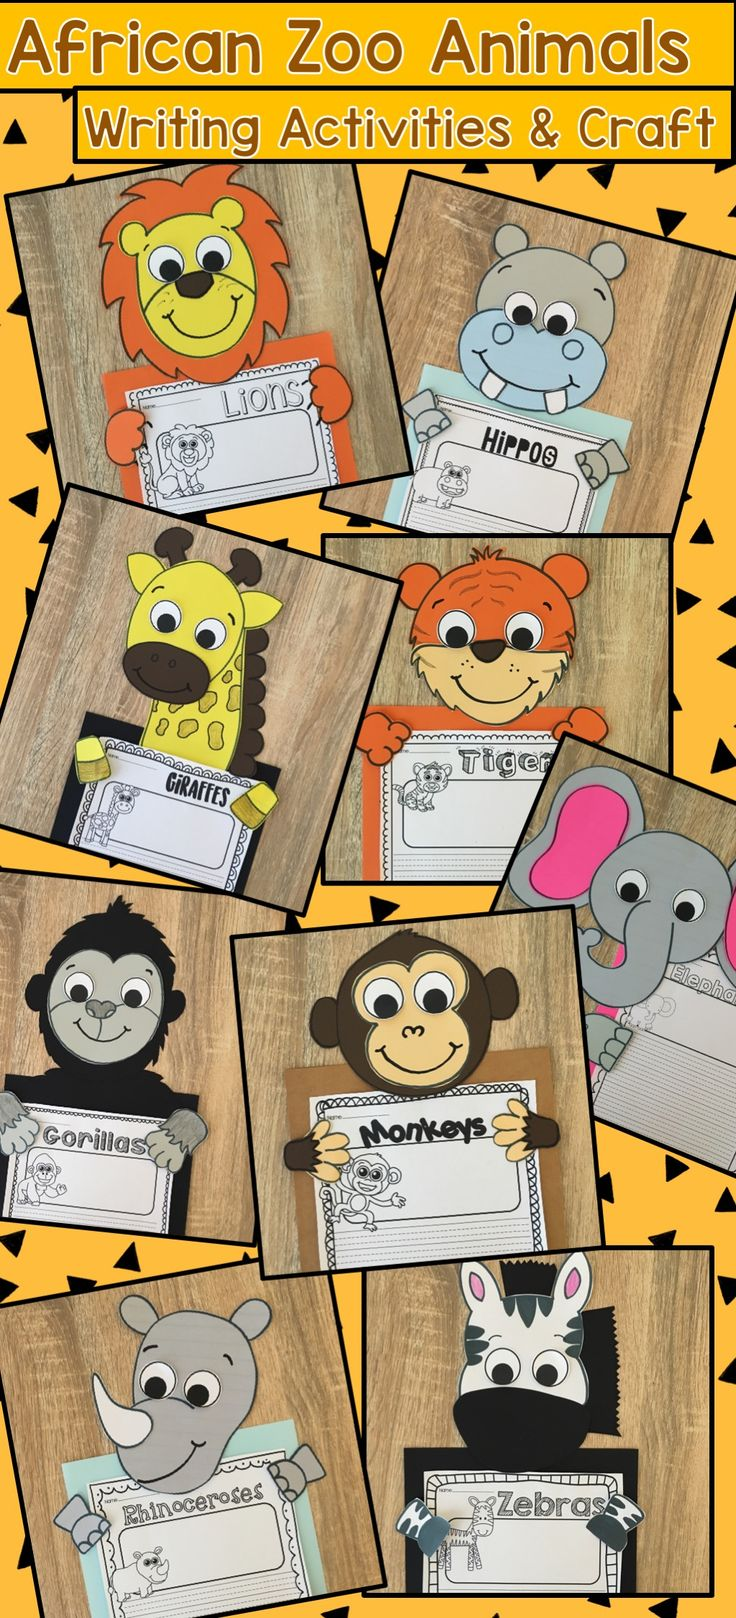 African Zoo Animal Writing and Craft Activities